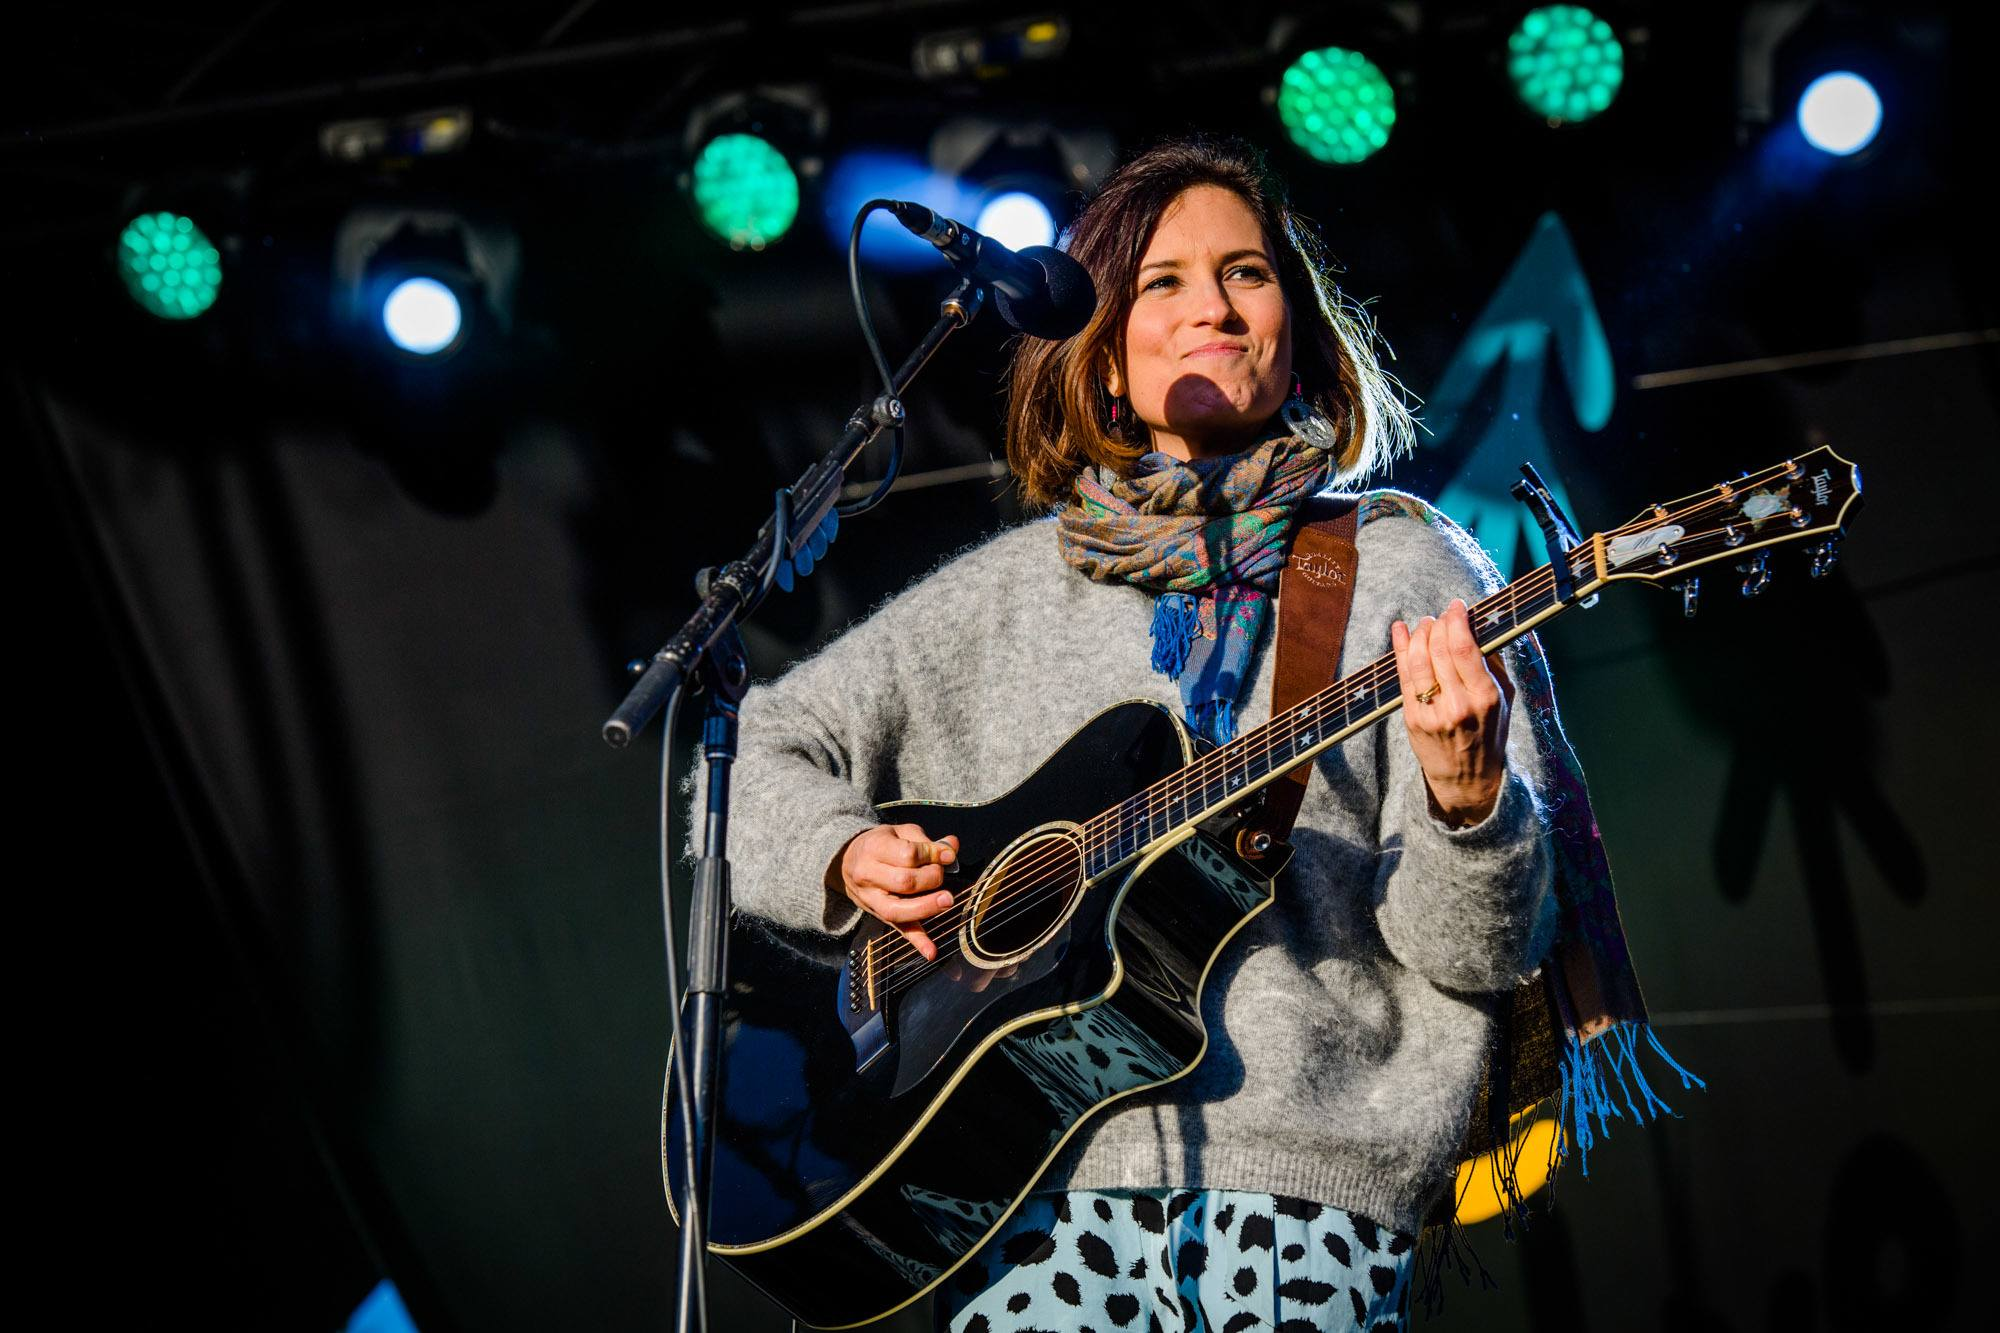 Missy Higgins performing at The Lost Lands 2016